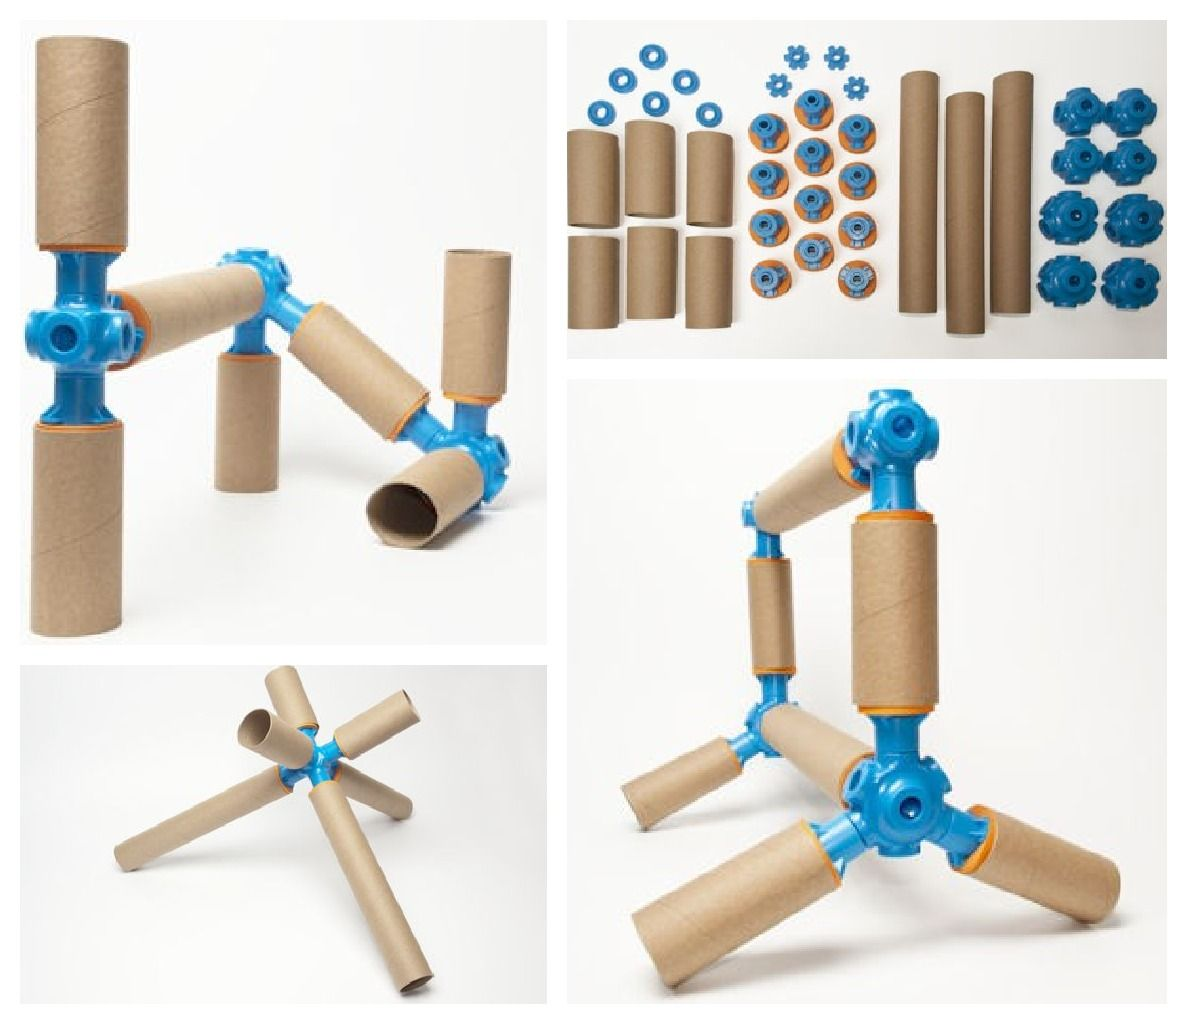 1000 images about tube furniture on pinterest cardboard tubes cardboard furniture and use of plastic cardboard tubes